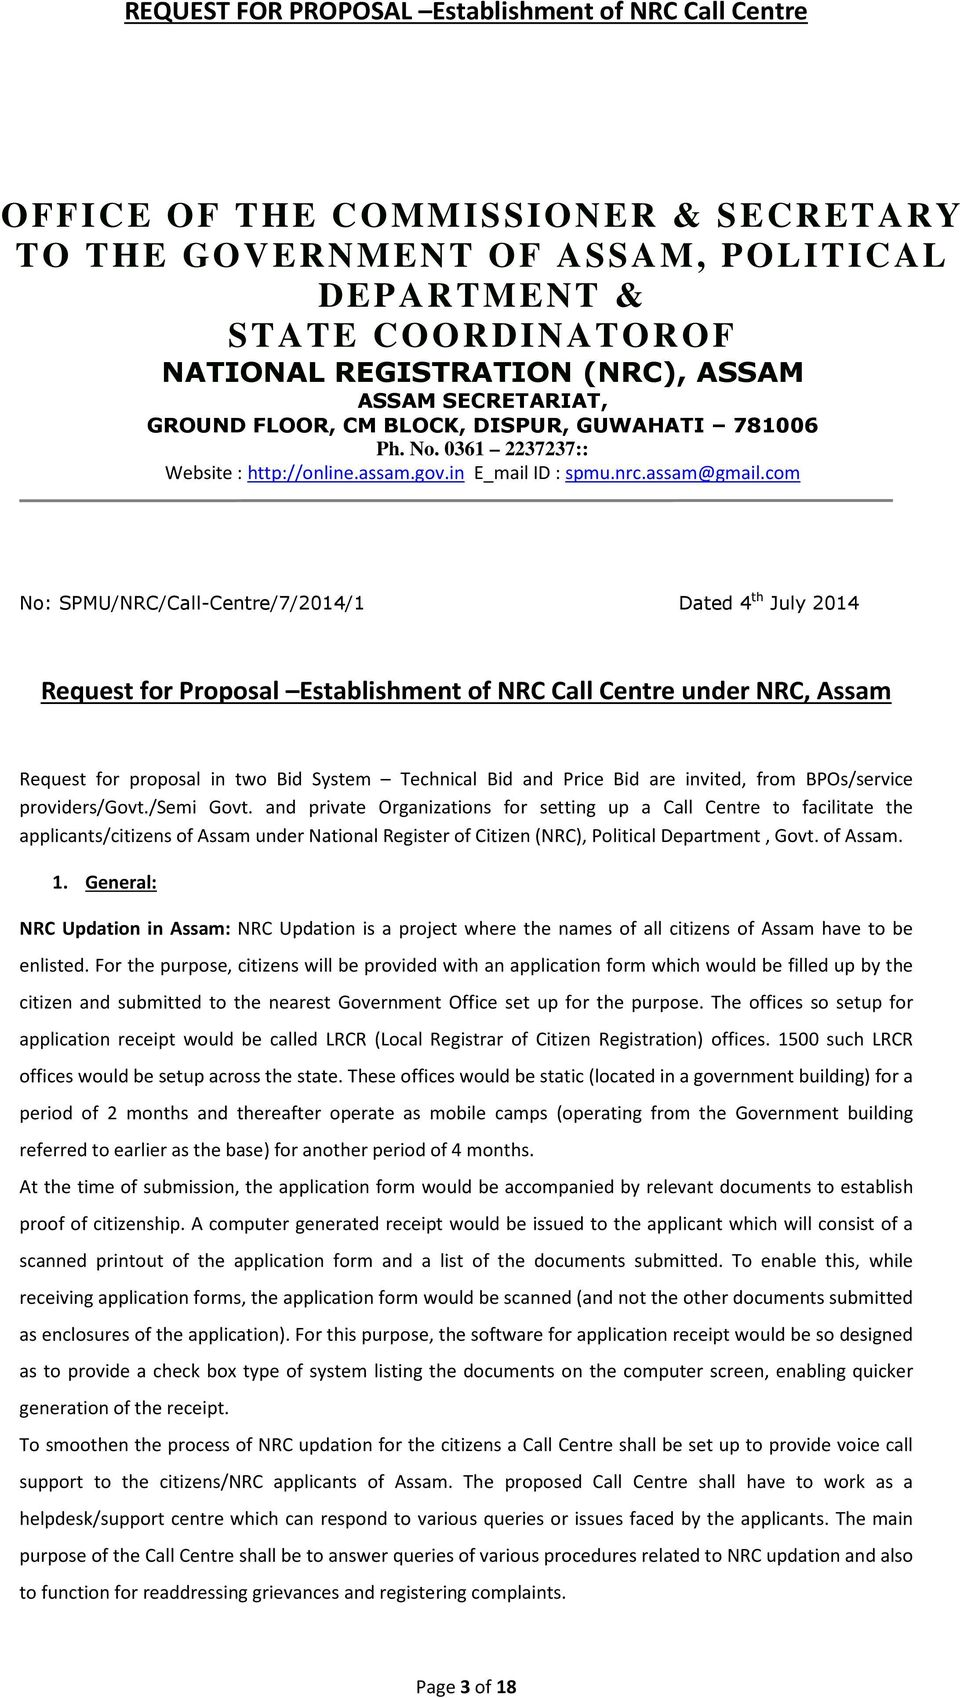 com No: SPMU/NRC/Call-Centre/7/2014/1 Dated 4 th July 2014 Request for Proposal Establishment of NRC Call Centre under NRC, Assam Request for proposal in two Bid System Technical Bid and Price Bid